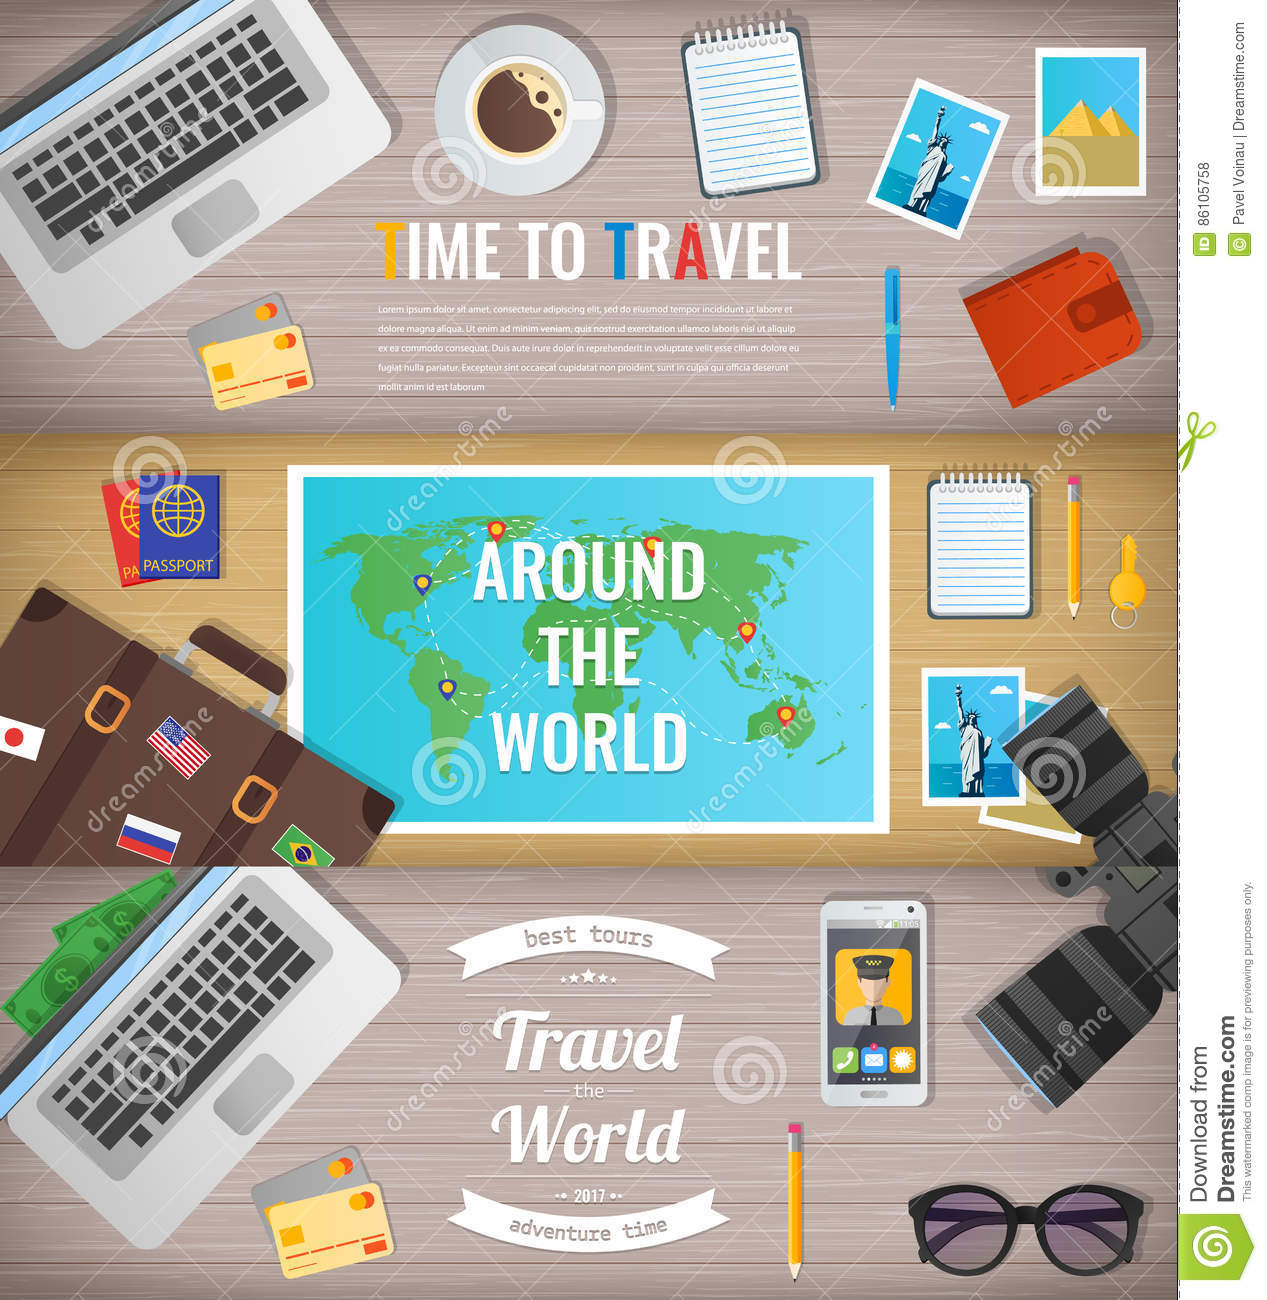 Travel Banners Travel And Tourism Web Banner Objects On Wooden Background Flat Design Vector Stock Vector Illustration Of Equipment Card 86105758